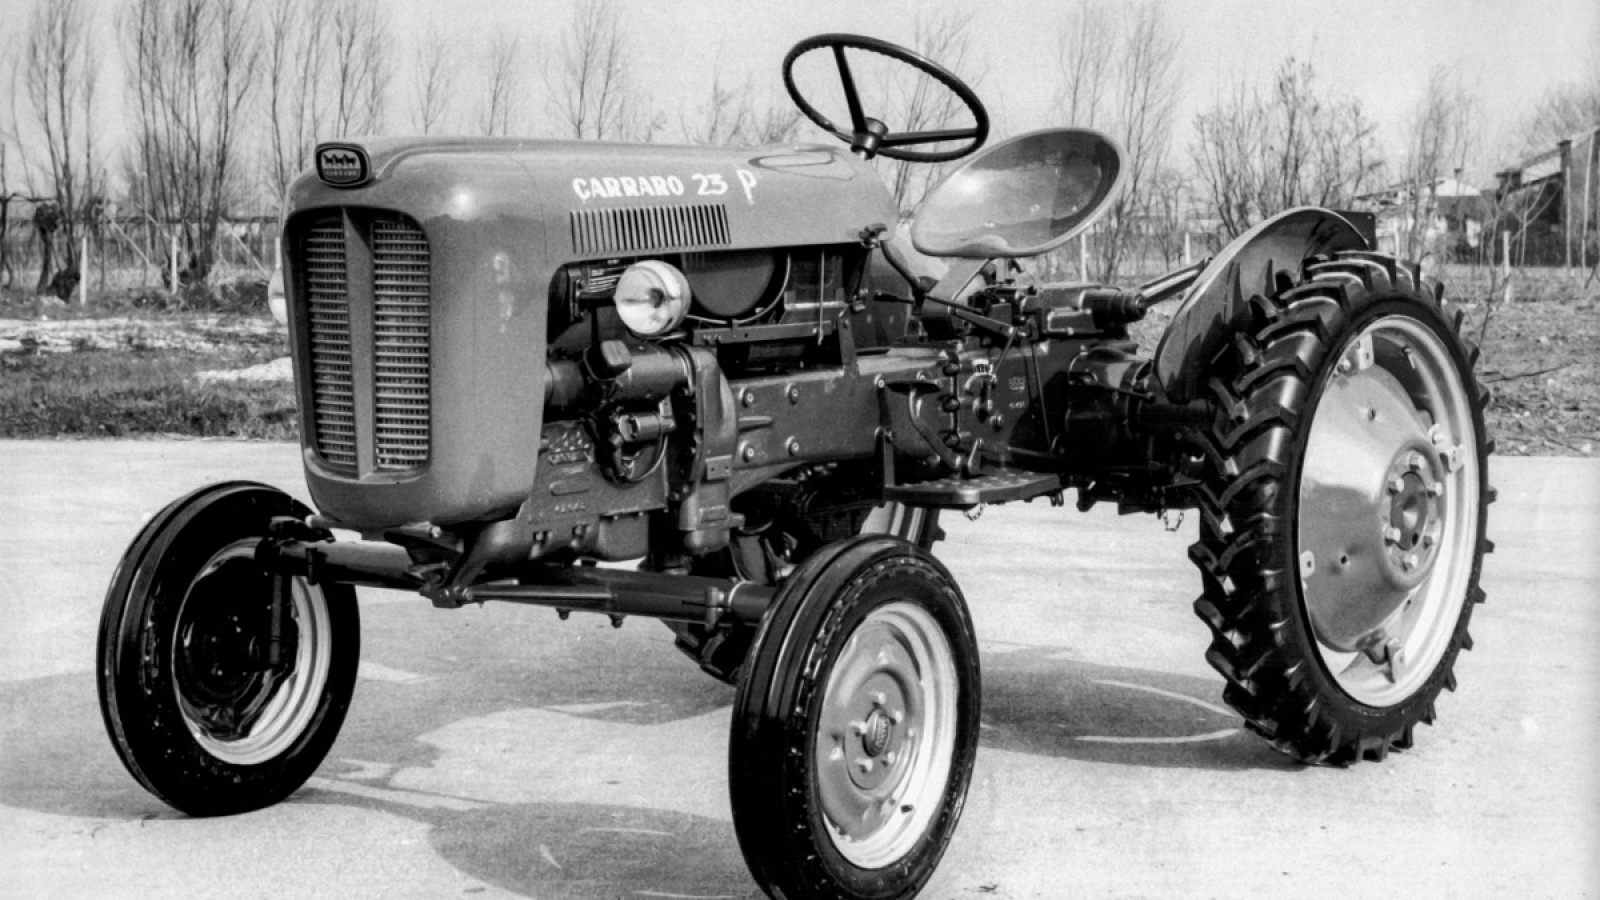 Our story began in 1932 with a clear goal. That being, the need to improve the quality of life and work of farmers.